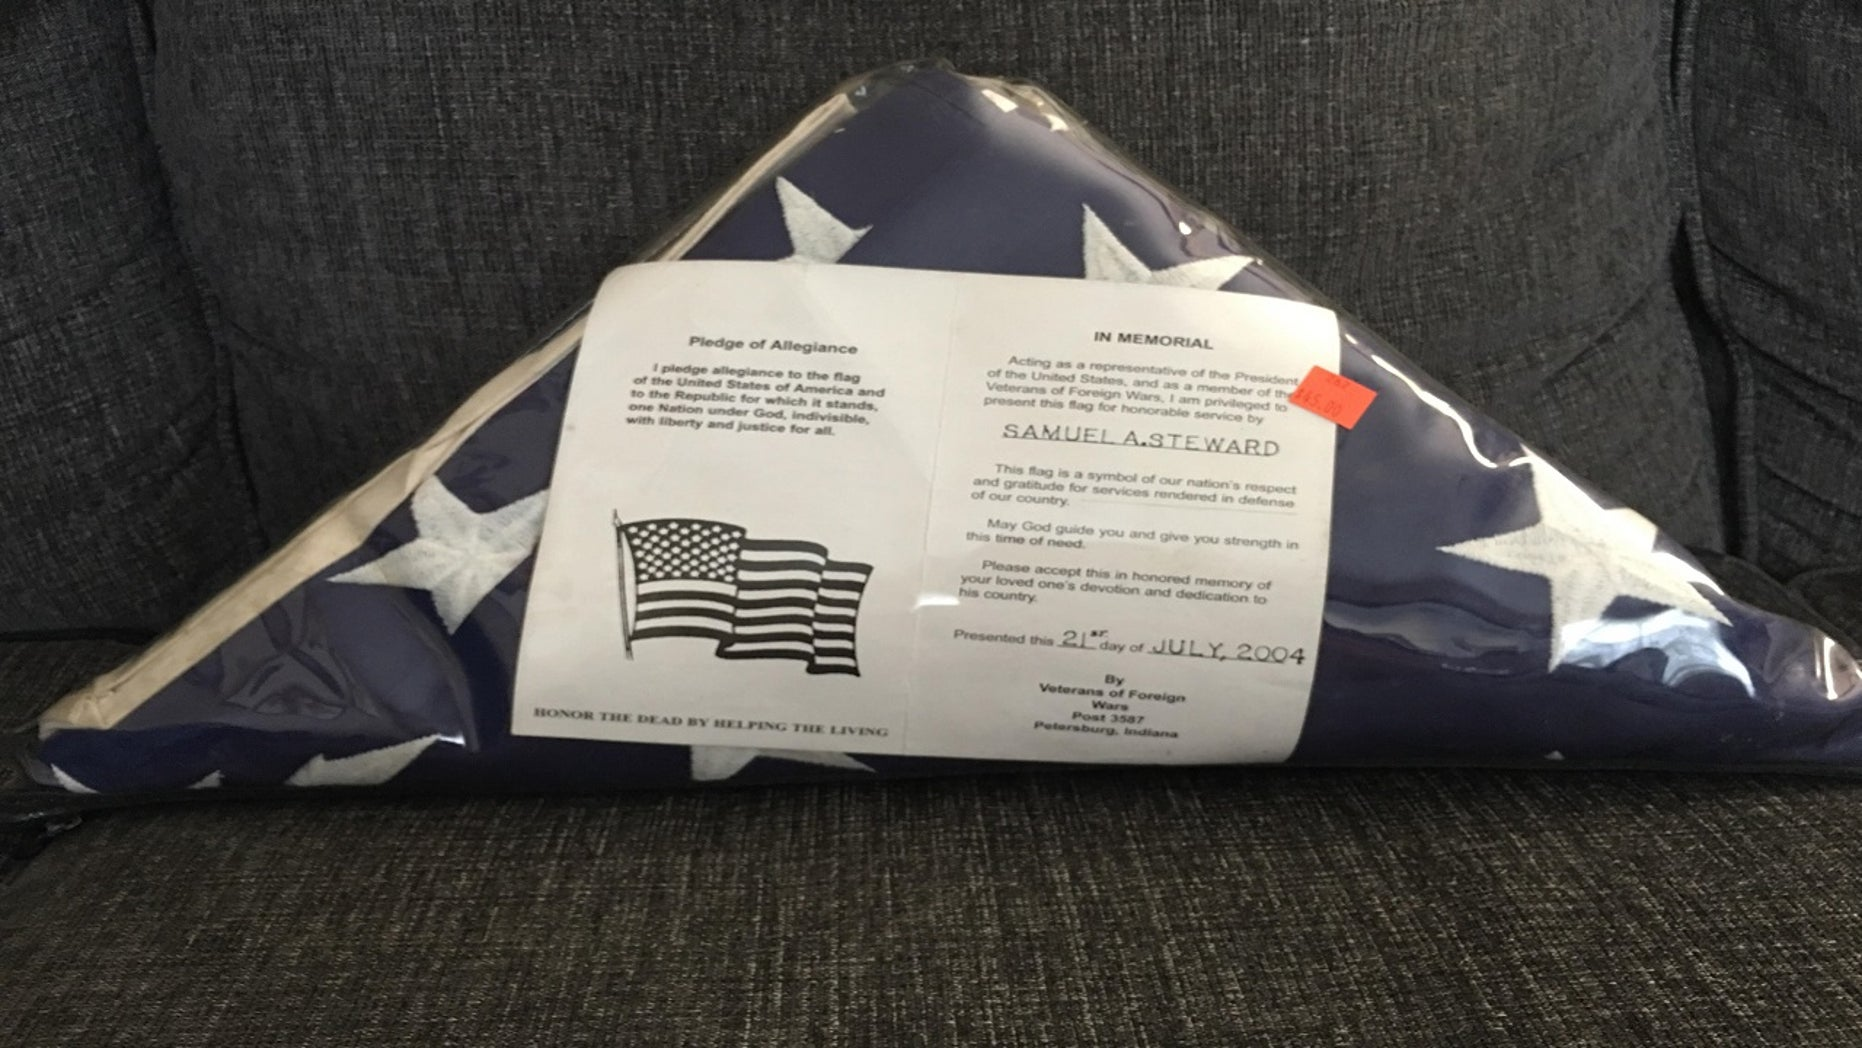 A Kentucky woman found a flag at a Peddler's Mall store in Bardstown last week that was dedicated to fallen veteran Samuel A. Steward.